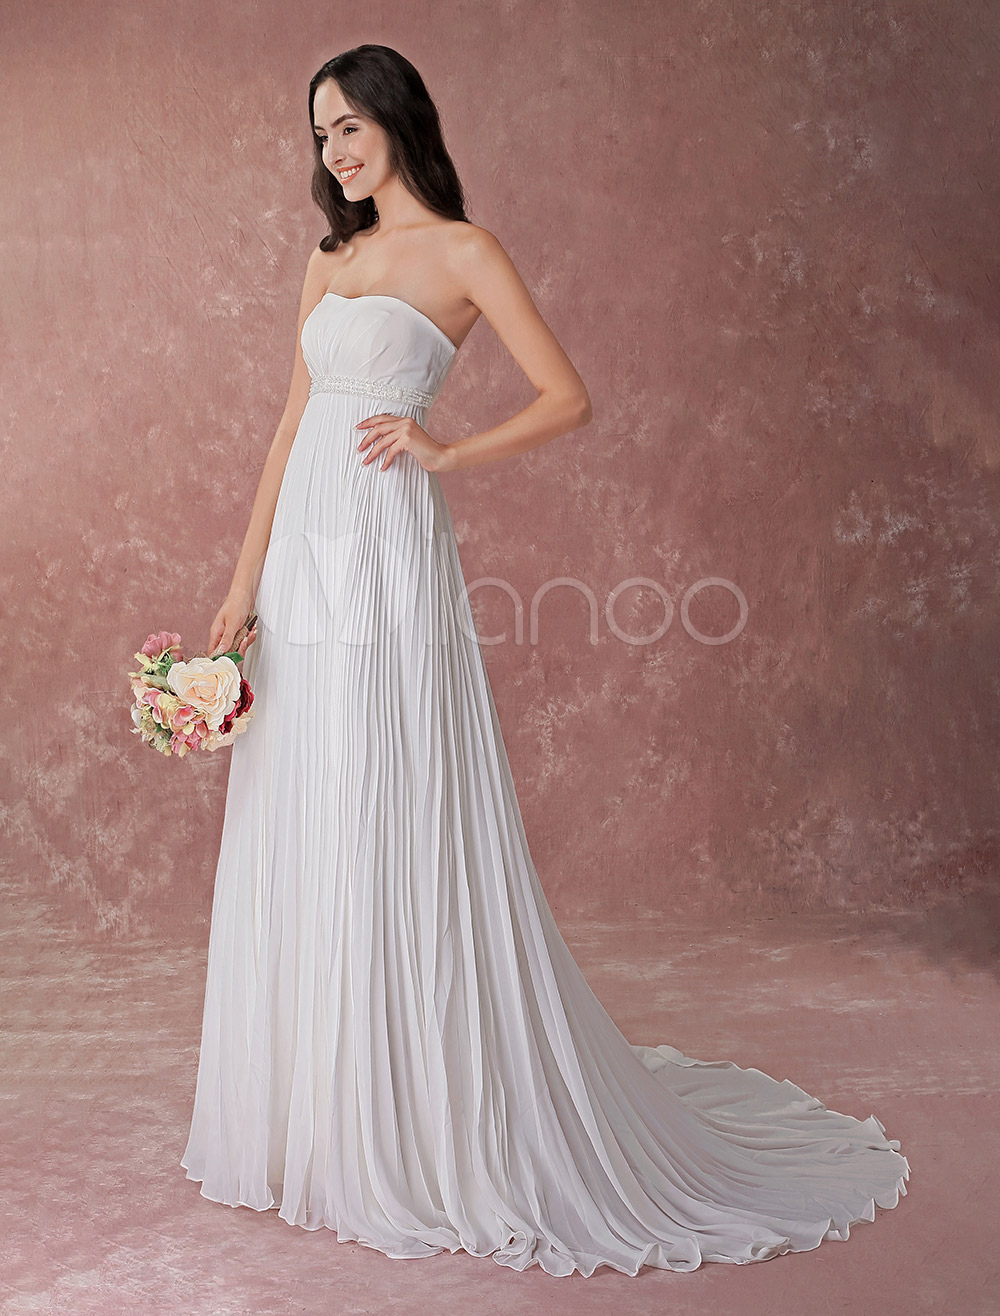 Ivory Wedding Dress Strapless Pleated Chiffon Beading Beach Bridal Gowns With Train No 1